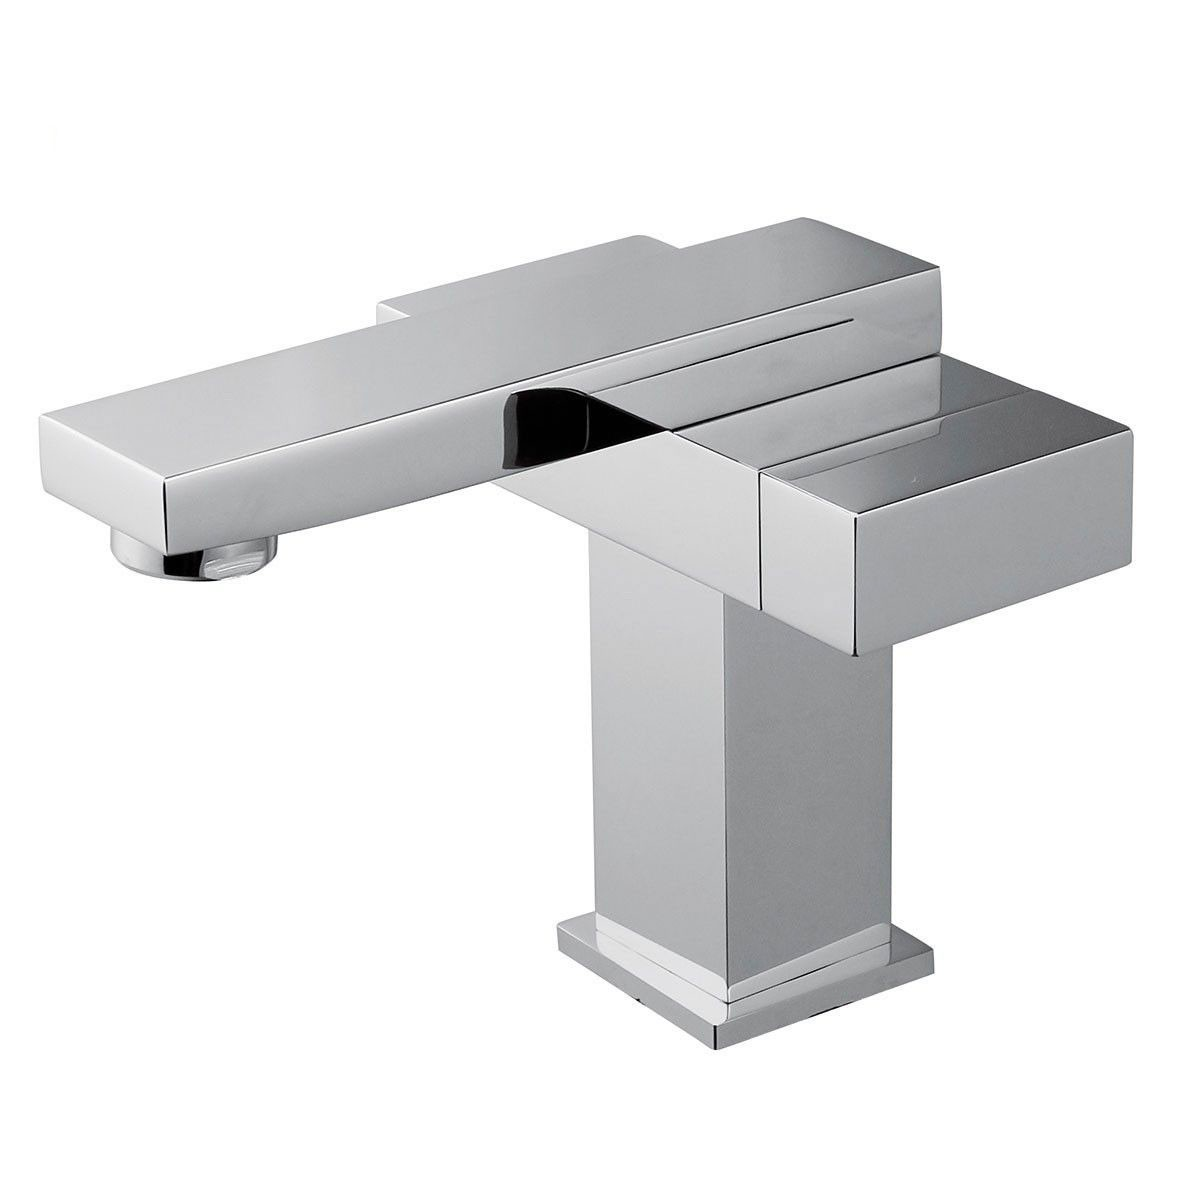 Basin&Sink Faucet - Single Hole Double Lever - Brass with Chrome Finish (6051)